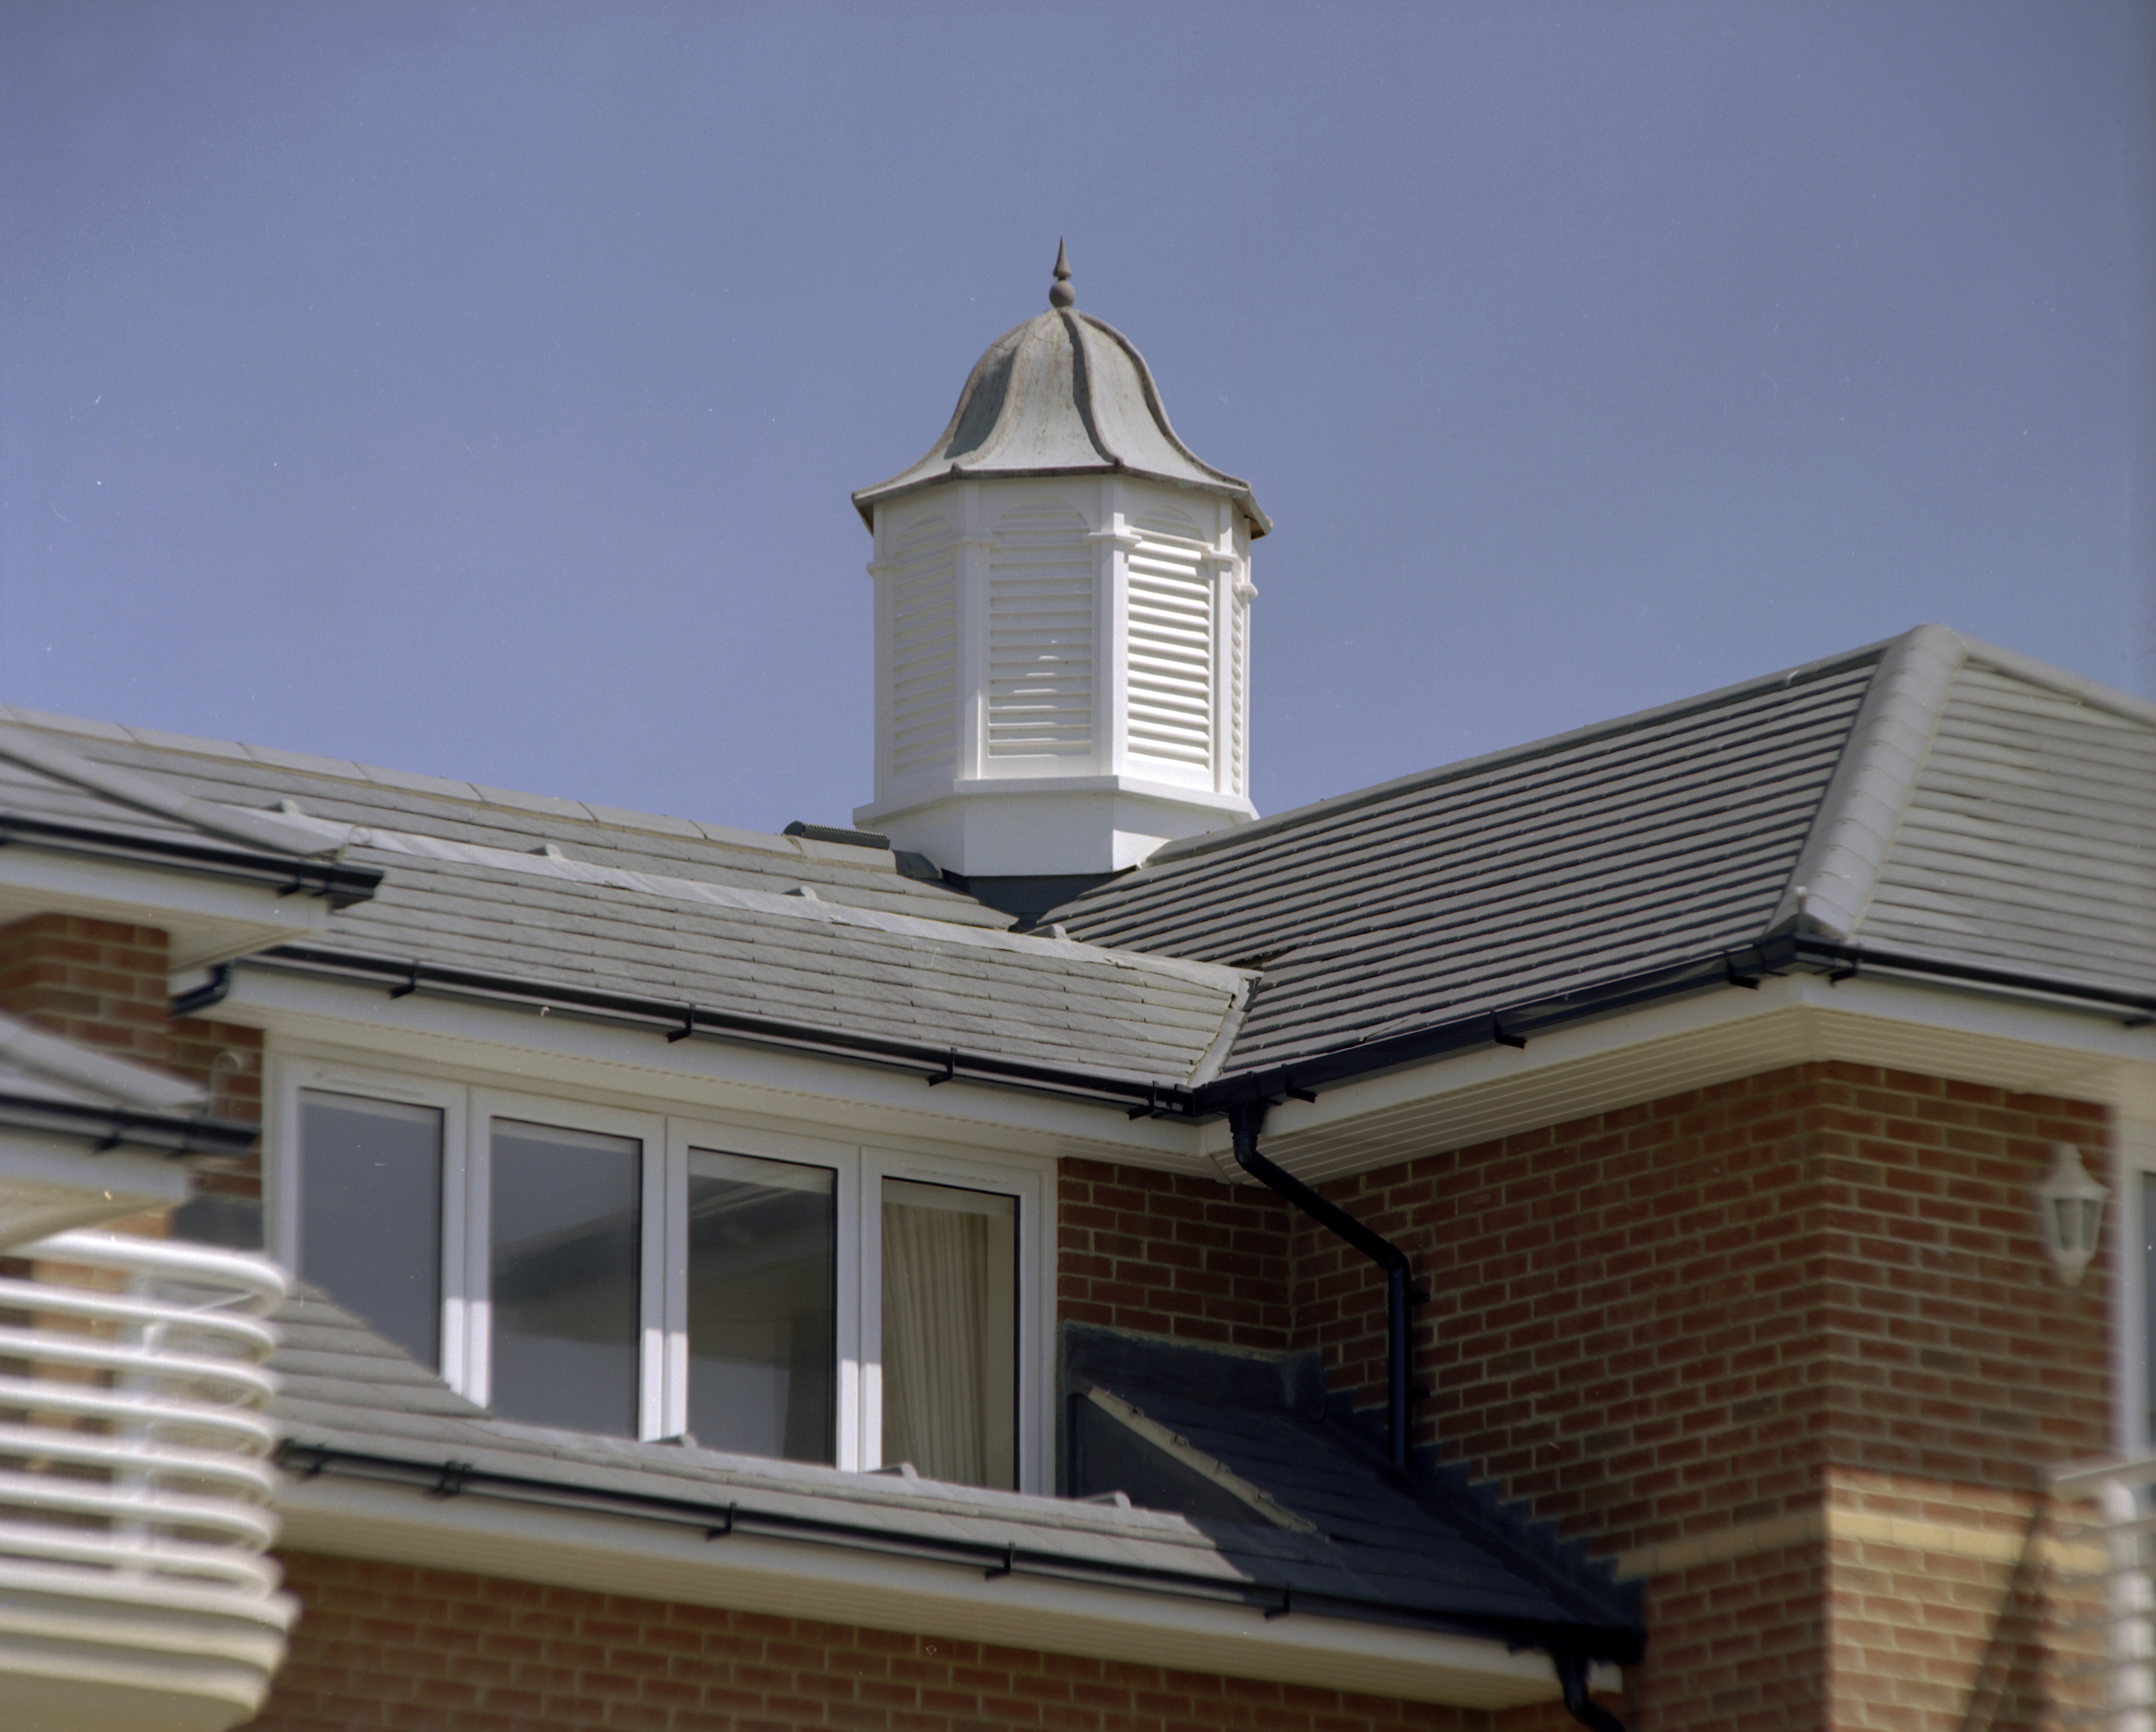 Roof turrets for blocks of flats